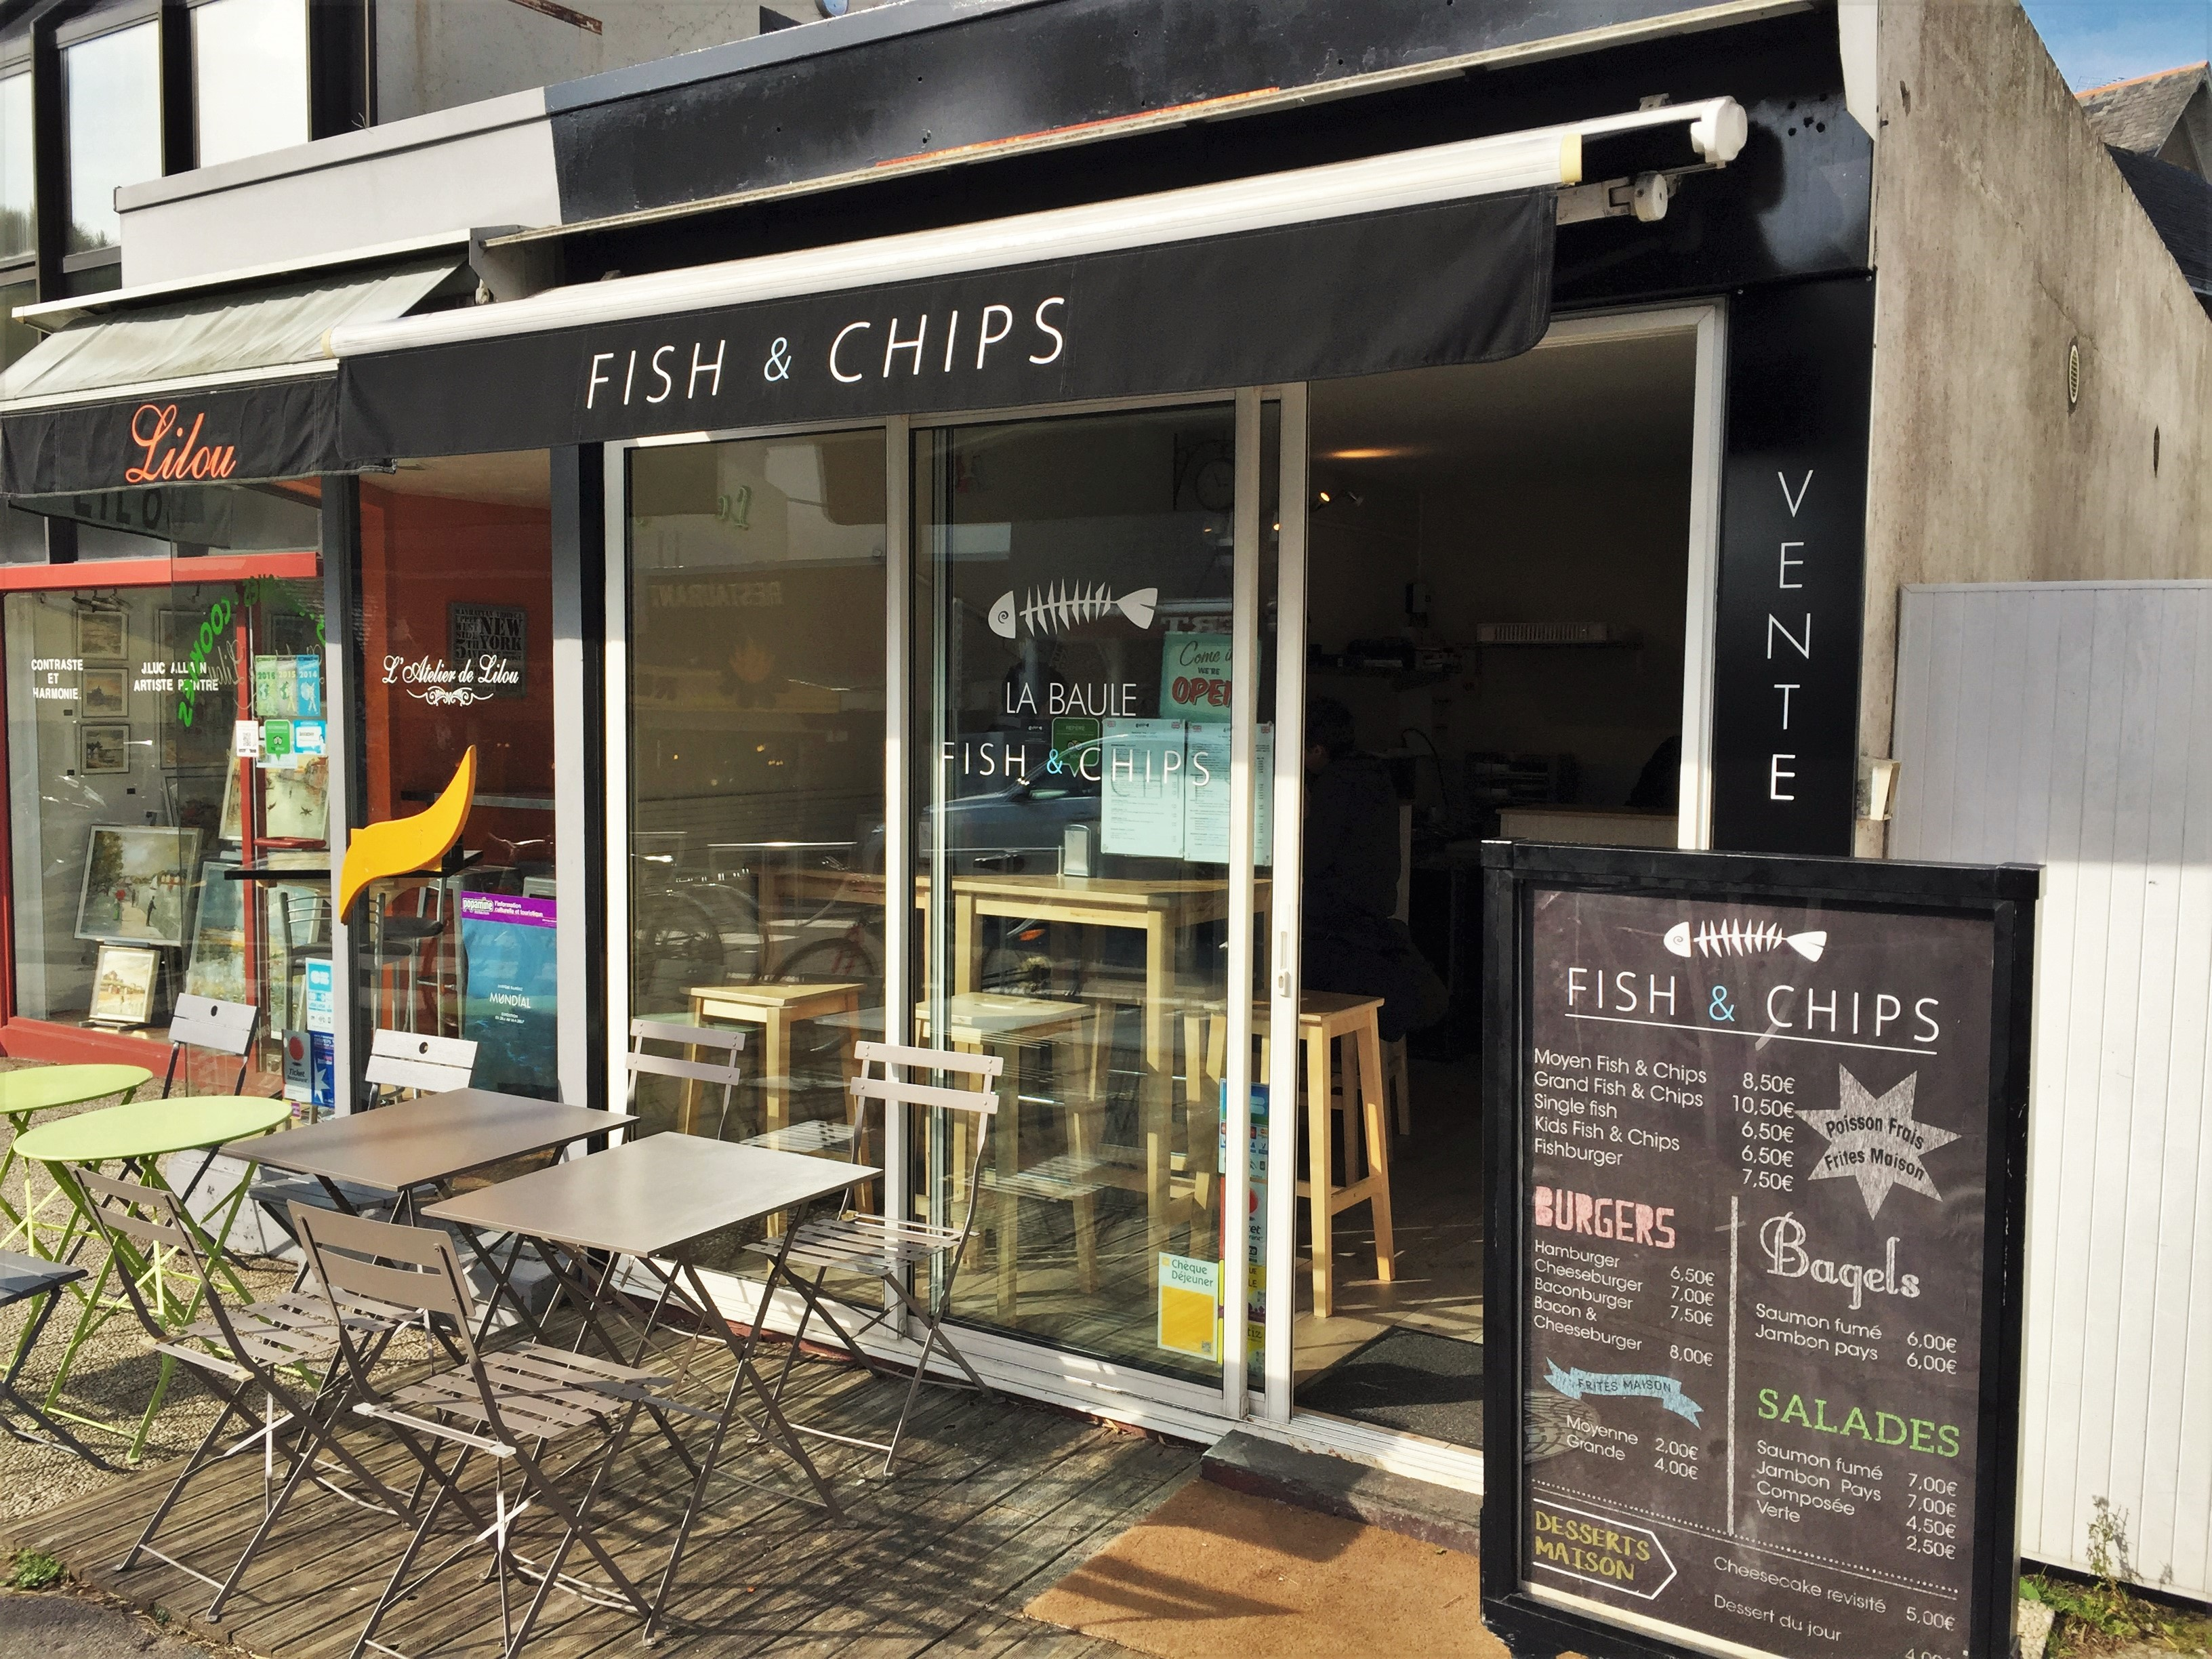 Pornichet La Baule Fish and Chips